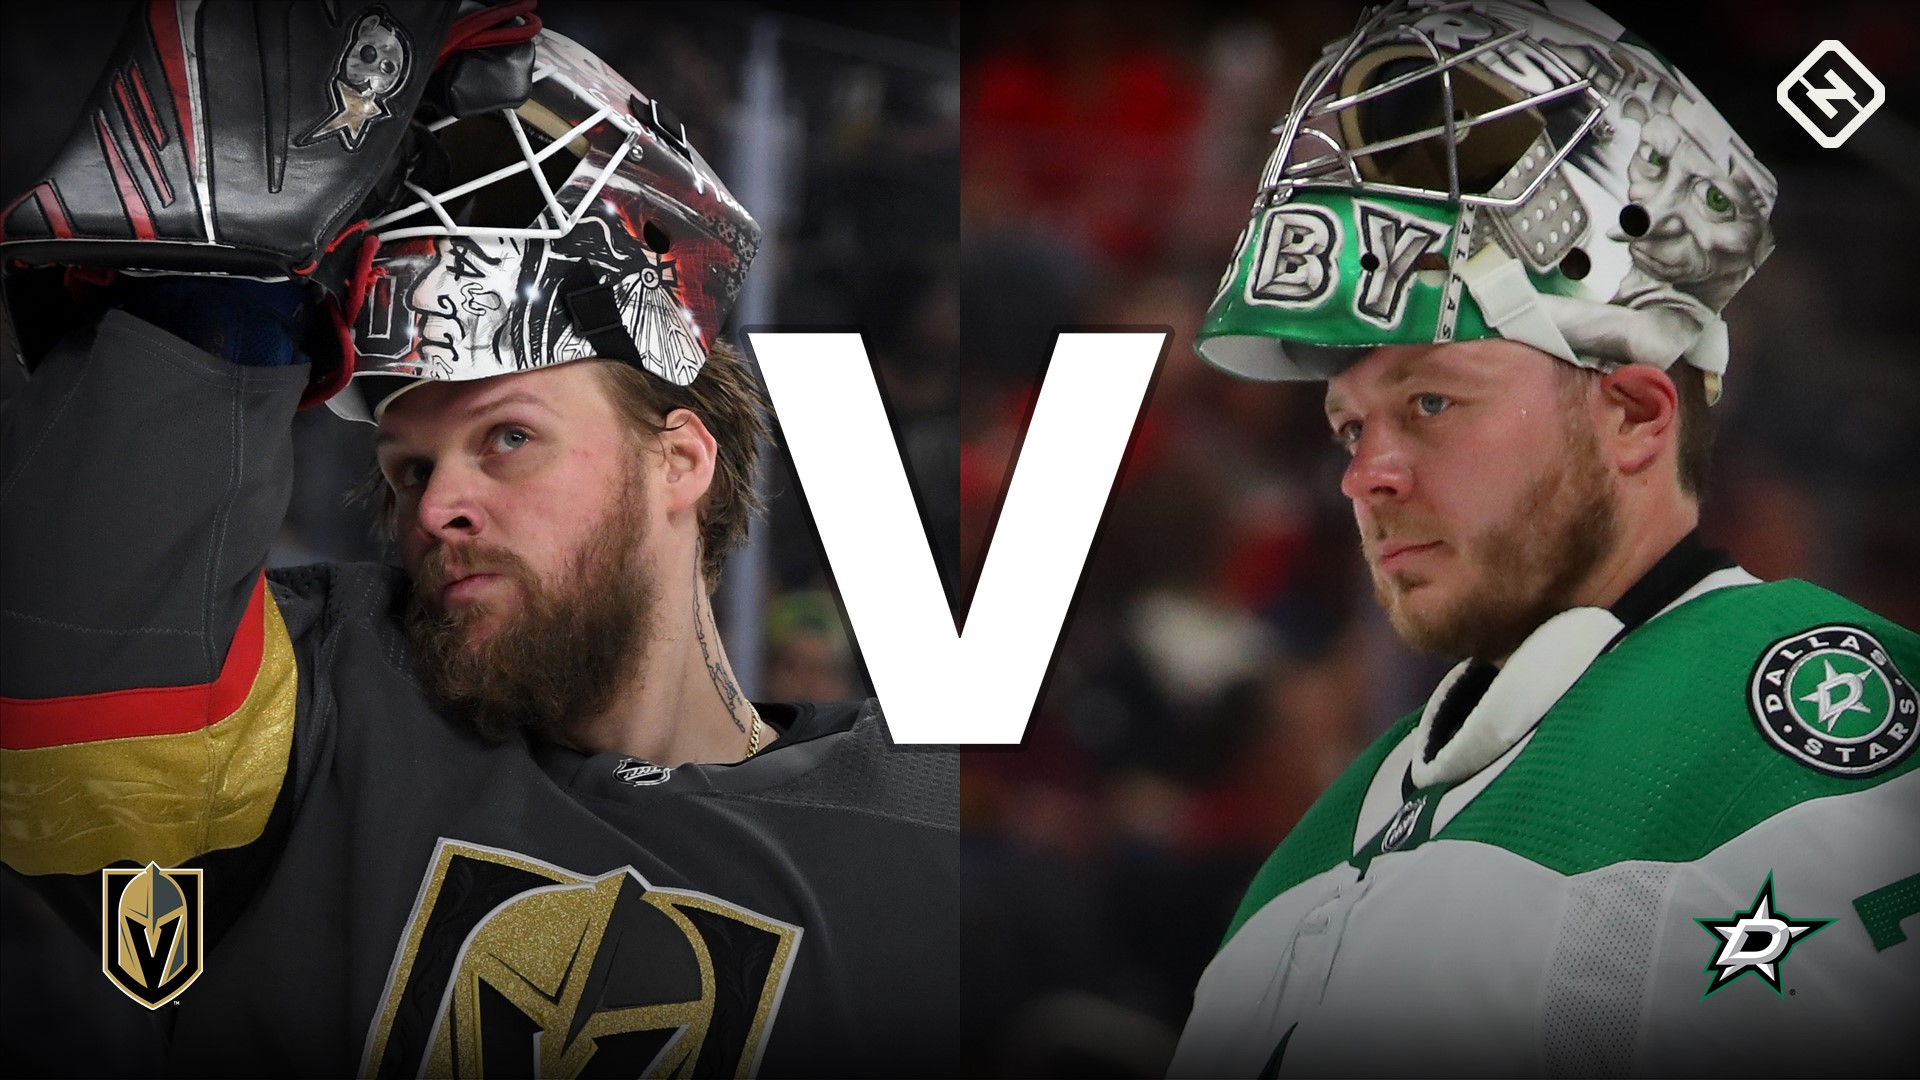 NHL playoffs 2020: Predictions, schedule, odds for Golden Knights vs. Stars Western Conference final